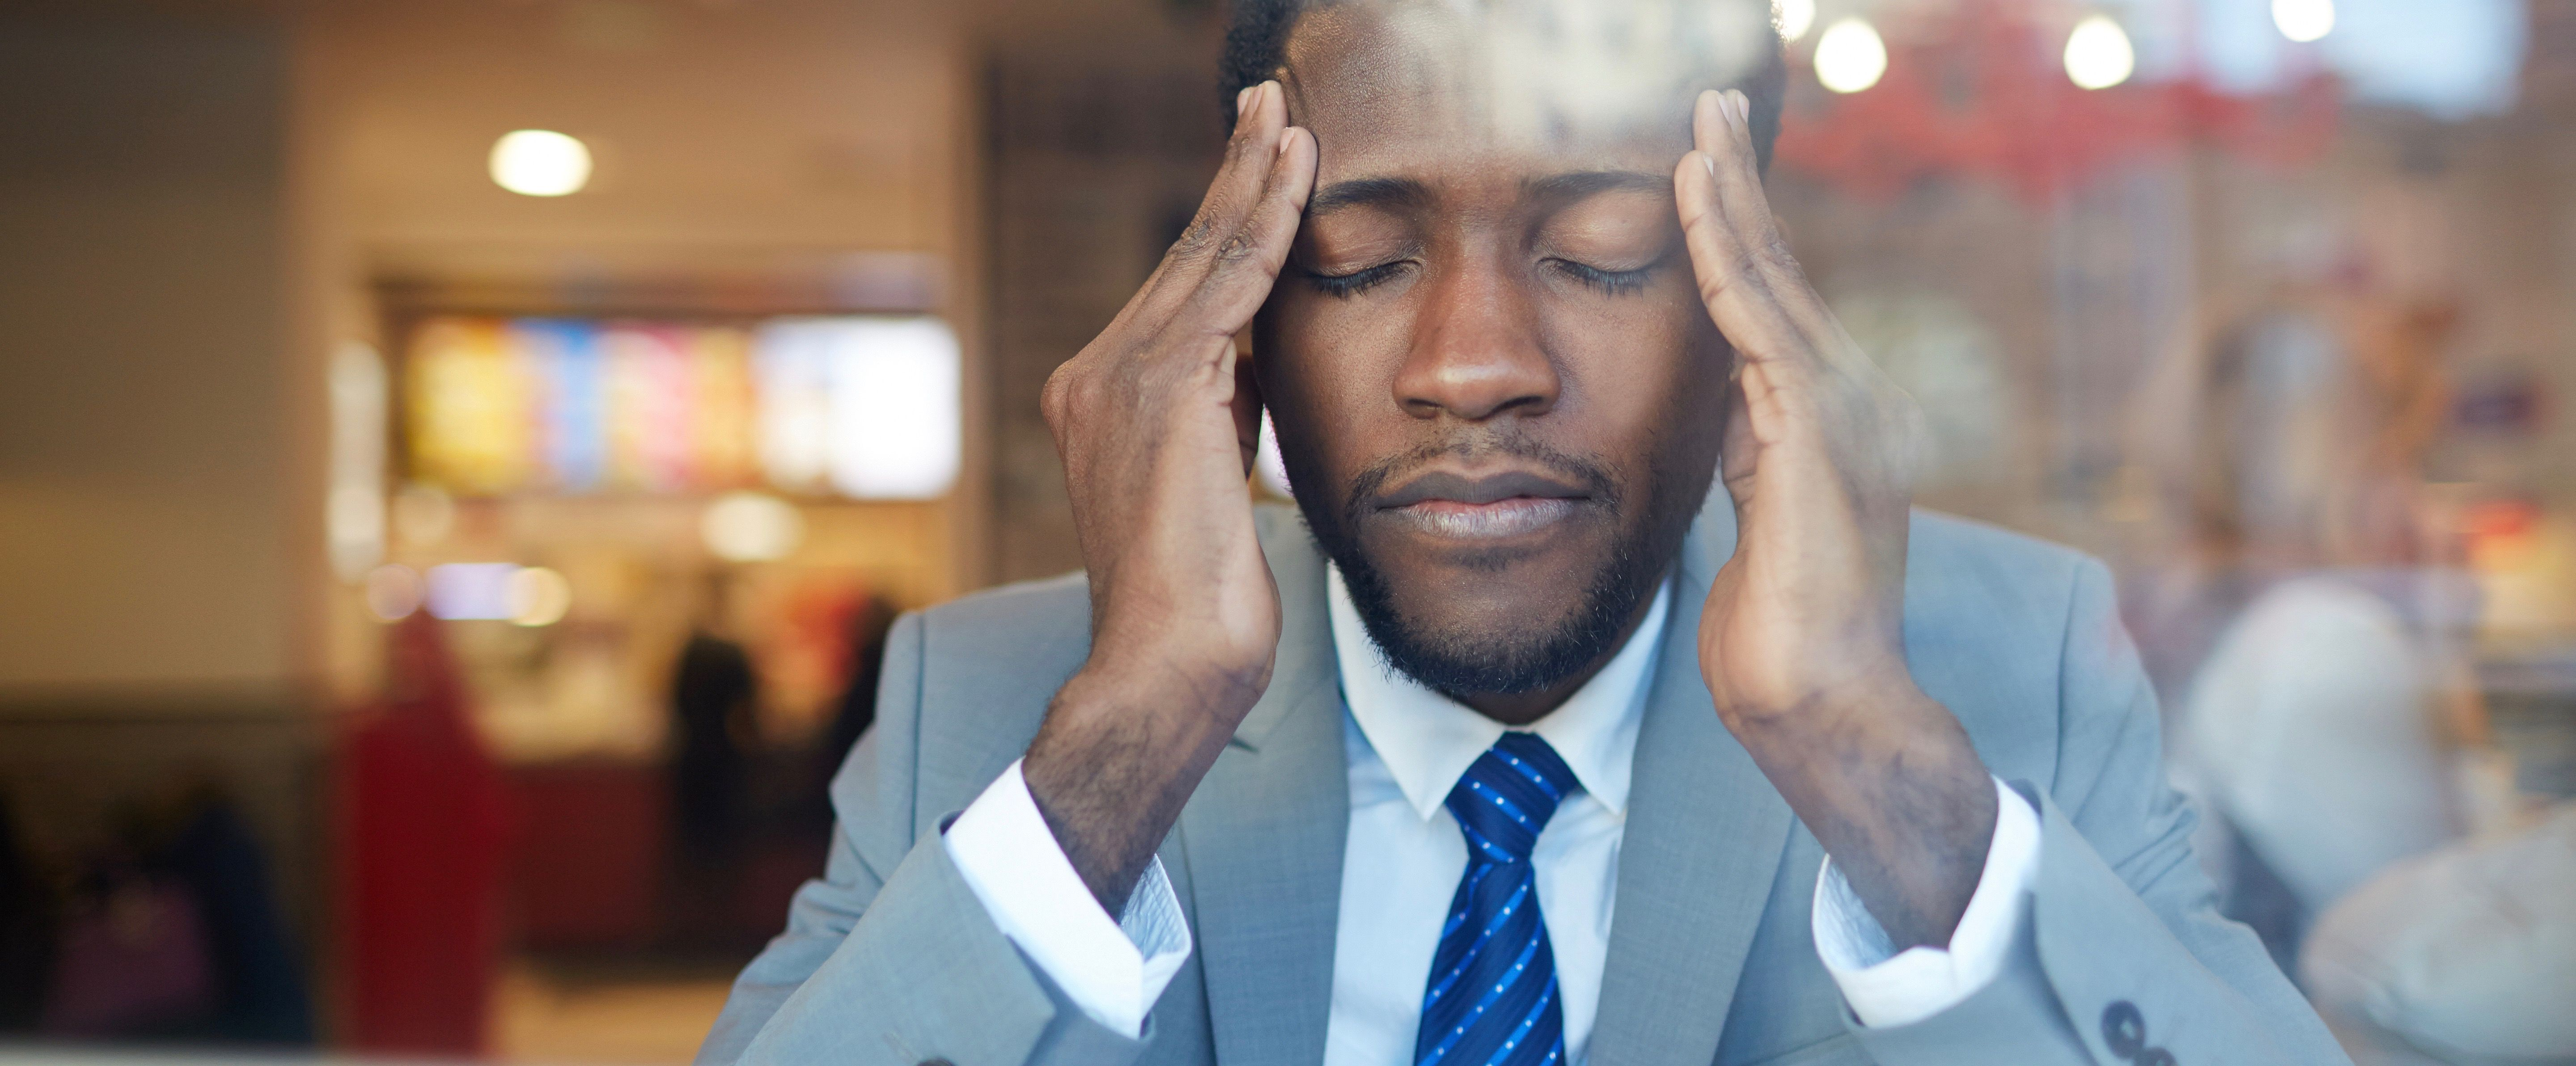 How to Avoid Burnout at Work: 7 Strategies from HubSpot's Manager of Culture